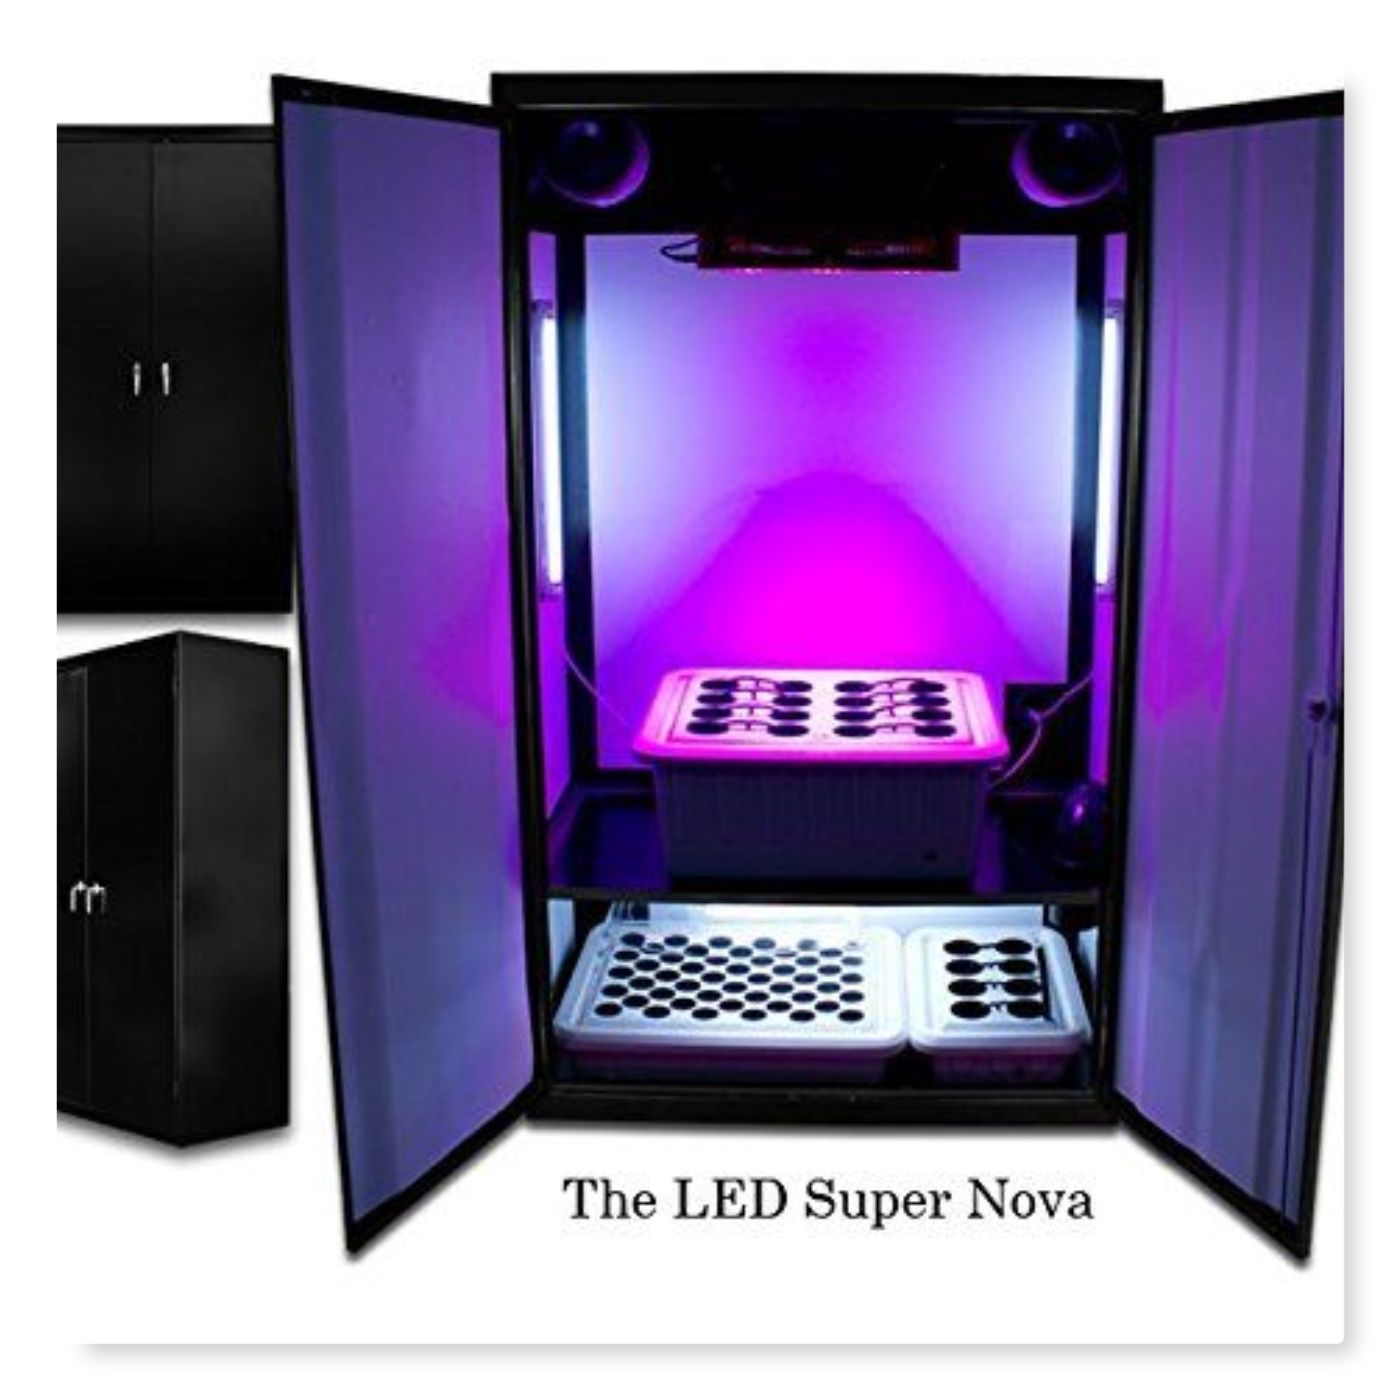 led super nova grow tent complete automated grow box system award winning design and. Black Bedroom Furniture Sets. Home Design Ideas